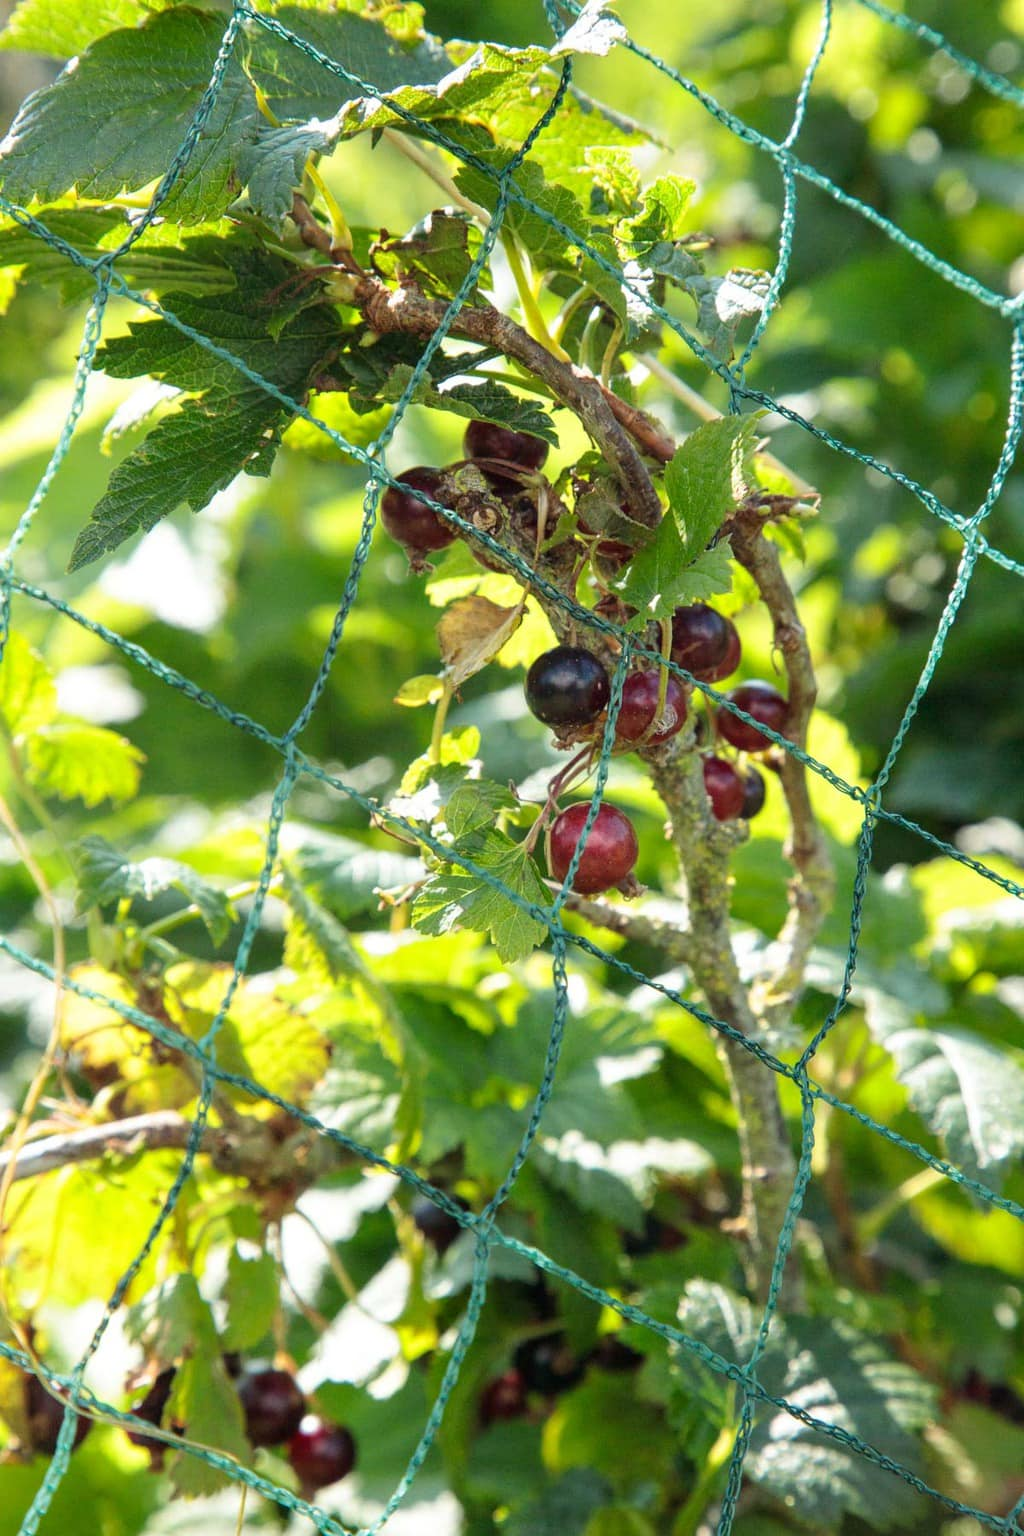 Photo of black currents on the plant protected by bird-resistant netting at Ballymaloe Farm.